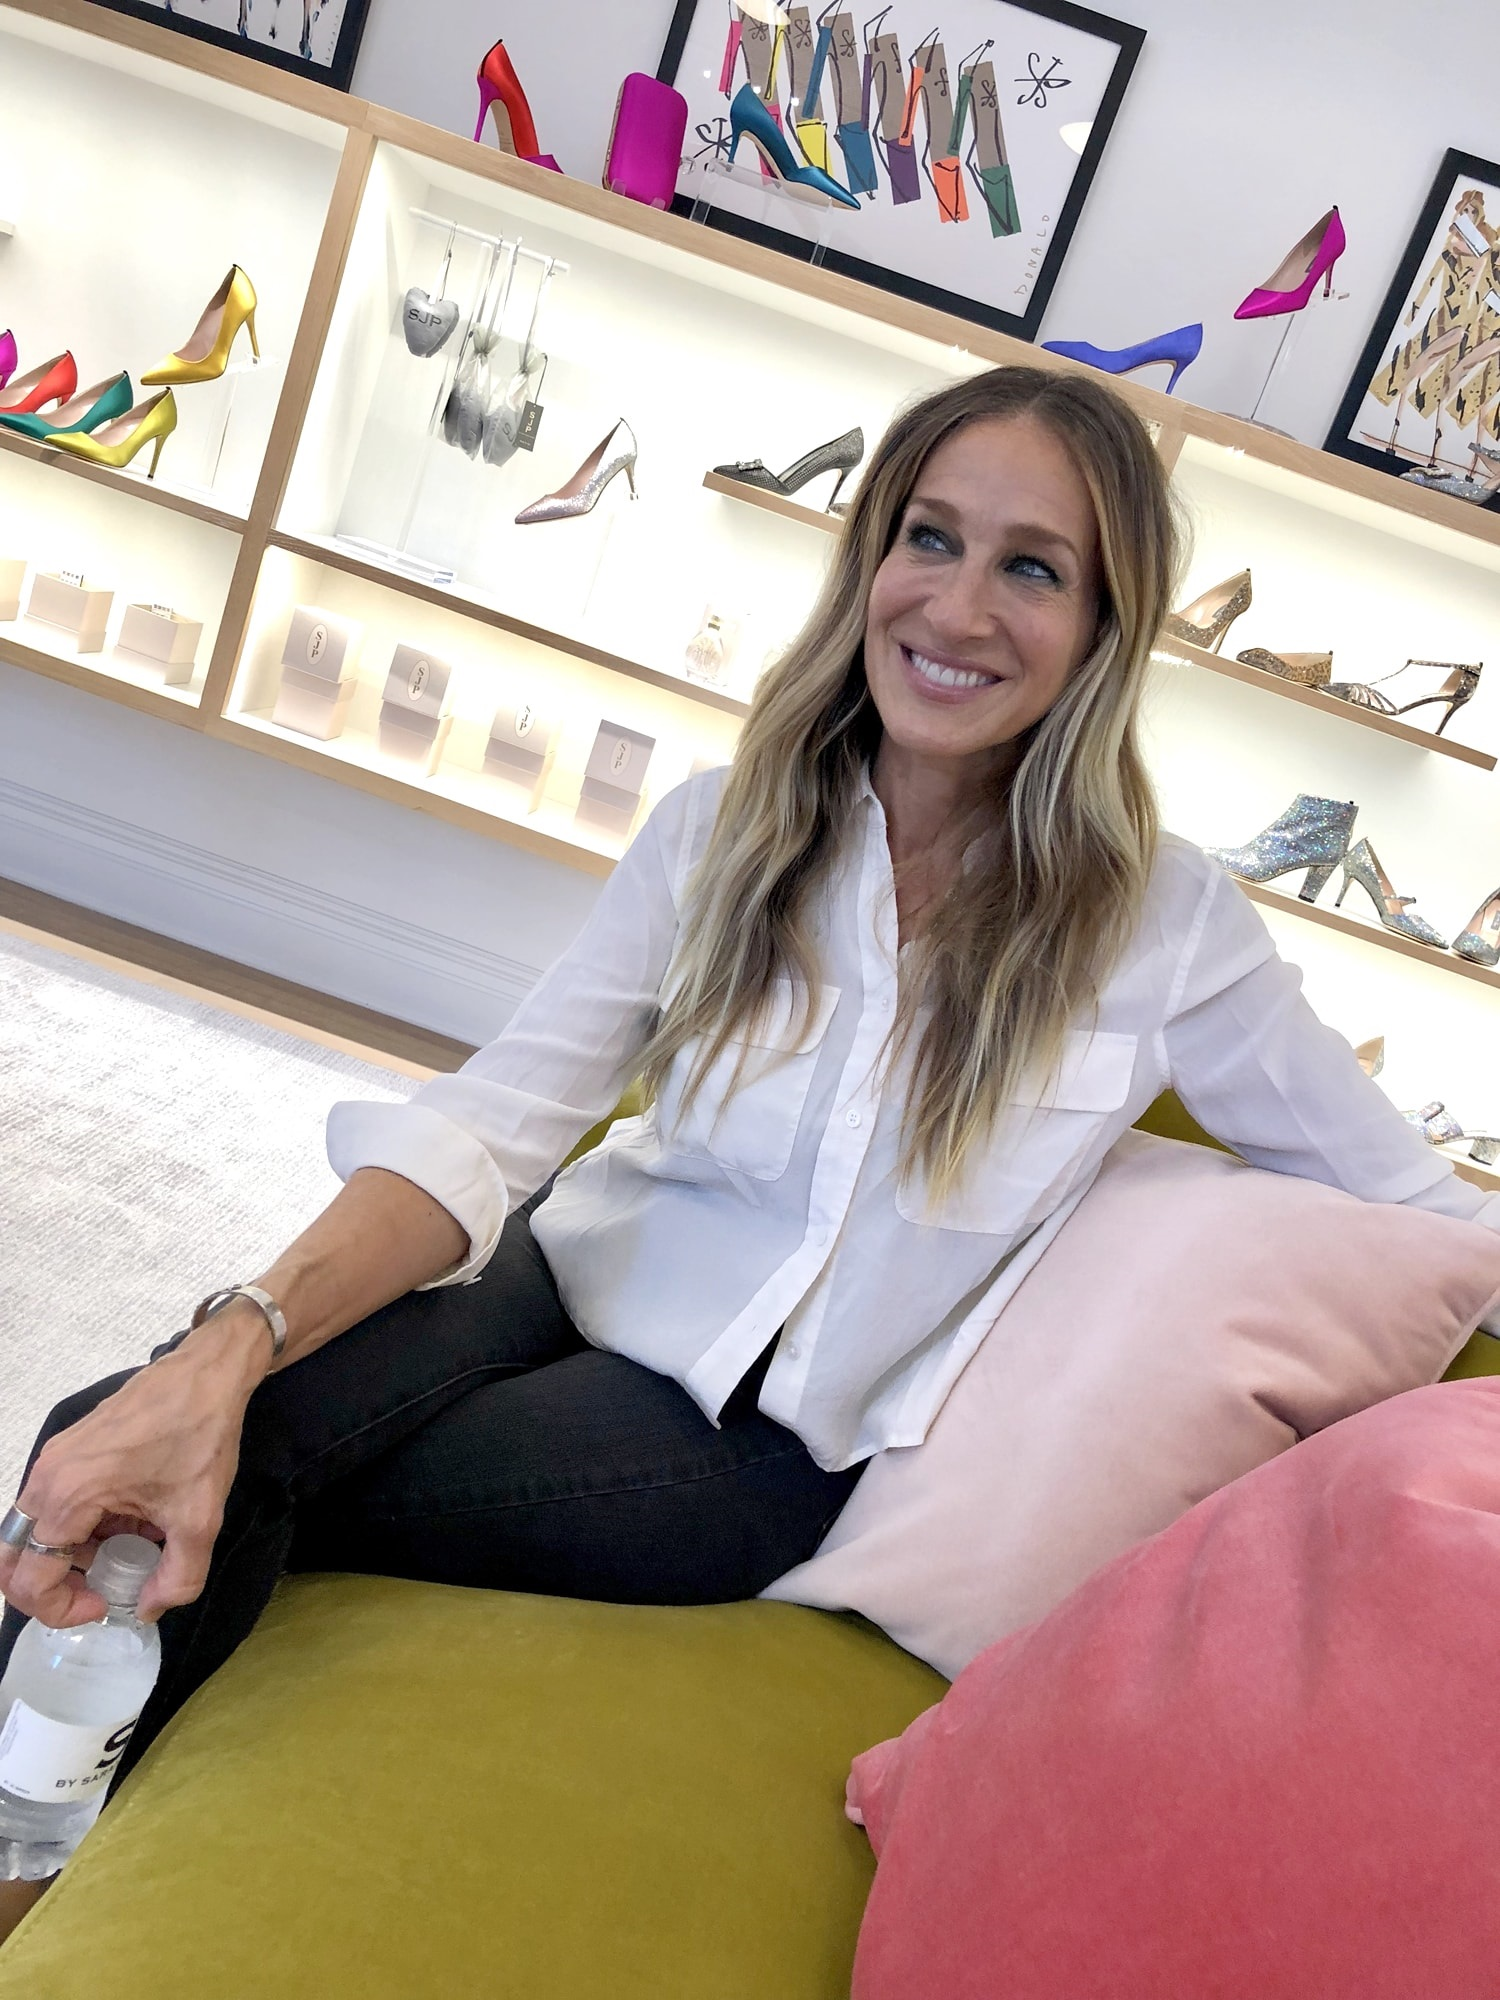 SJP by Sarah Jessica Parker NYC shoe store interior